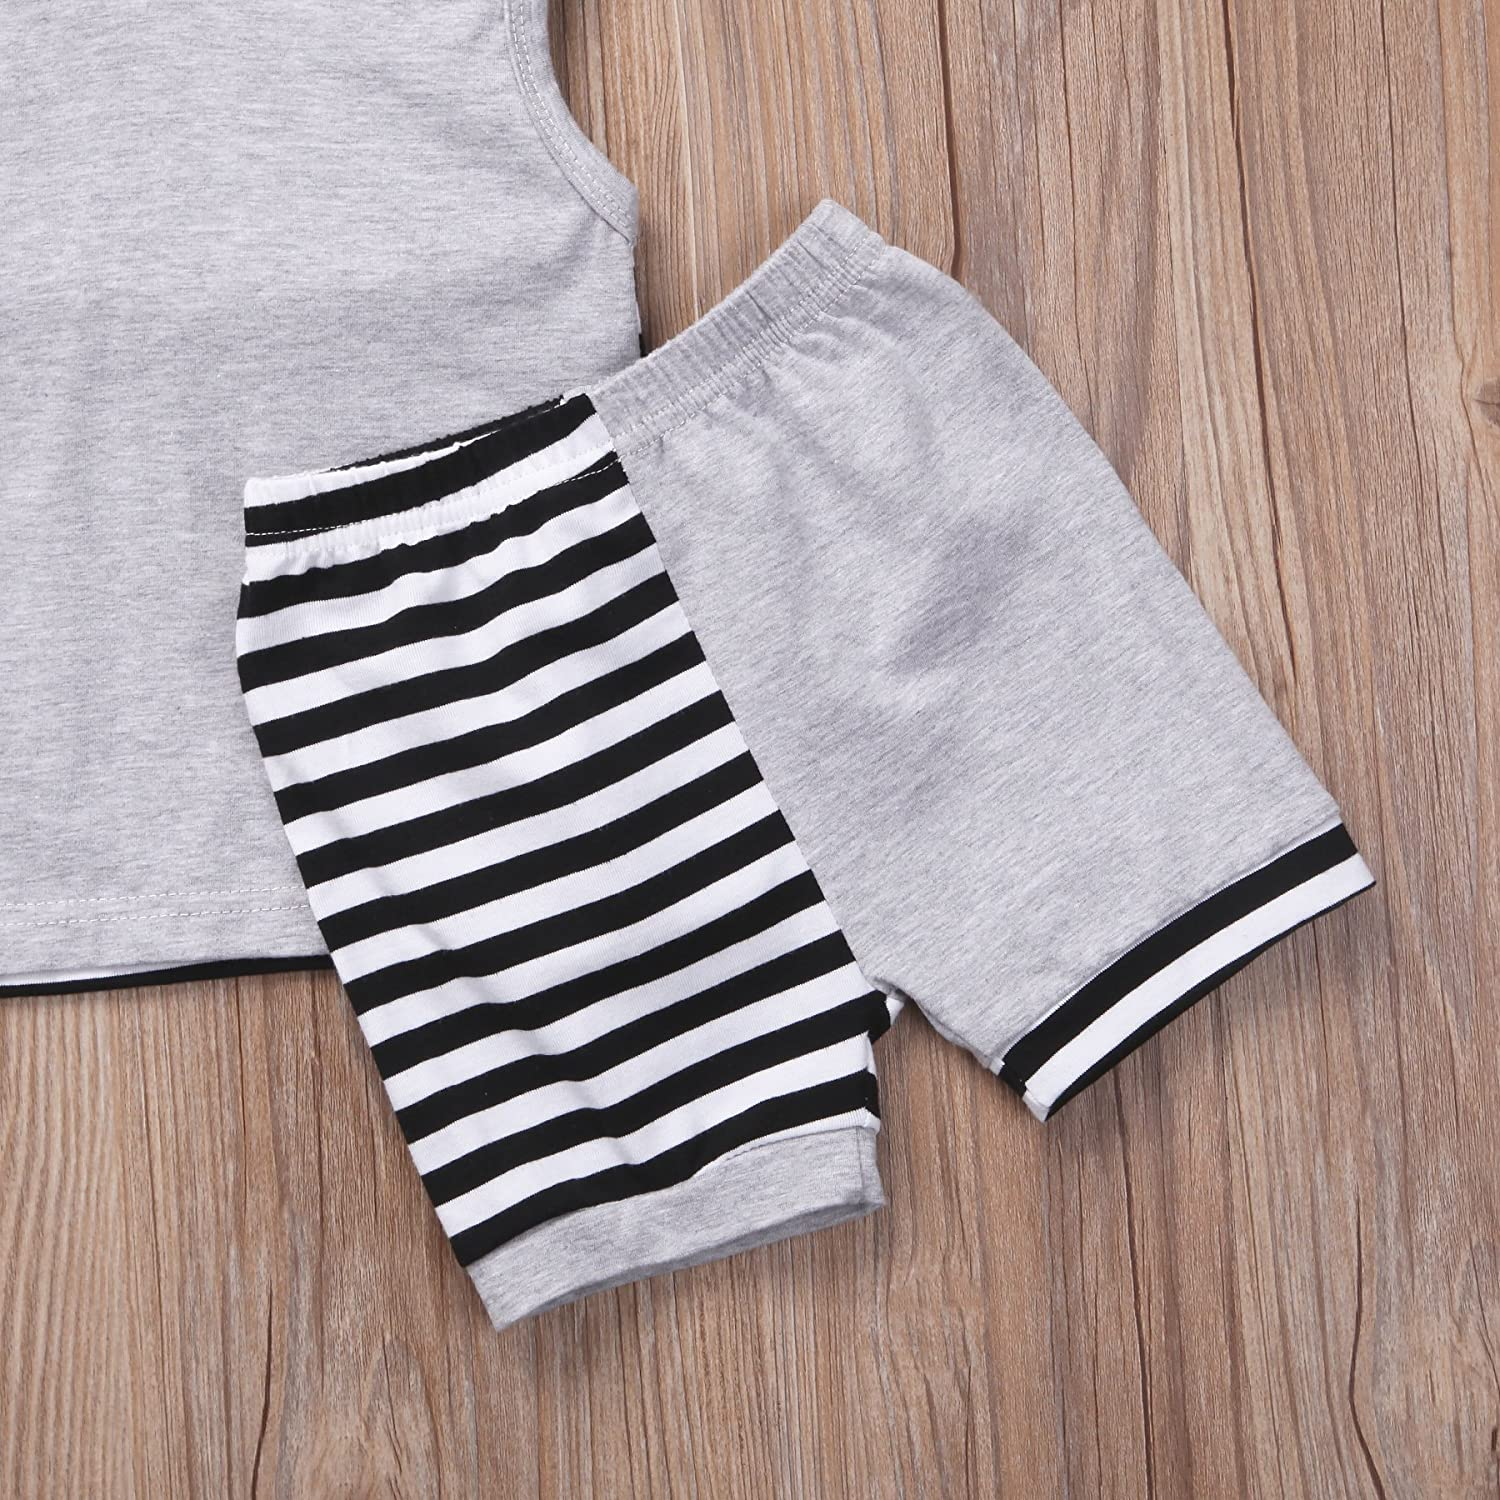 Enhill 2Pcs//Set Infant Baby Boy Sleeveless Hoodie Tops Striped Shorts Summer Outfit Clothes